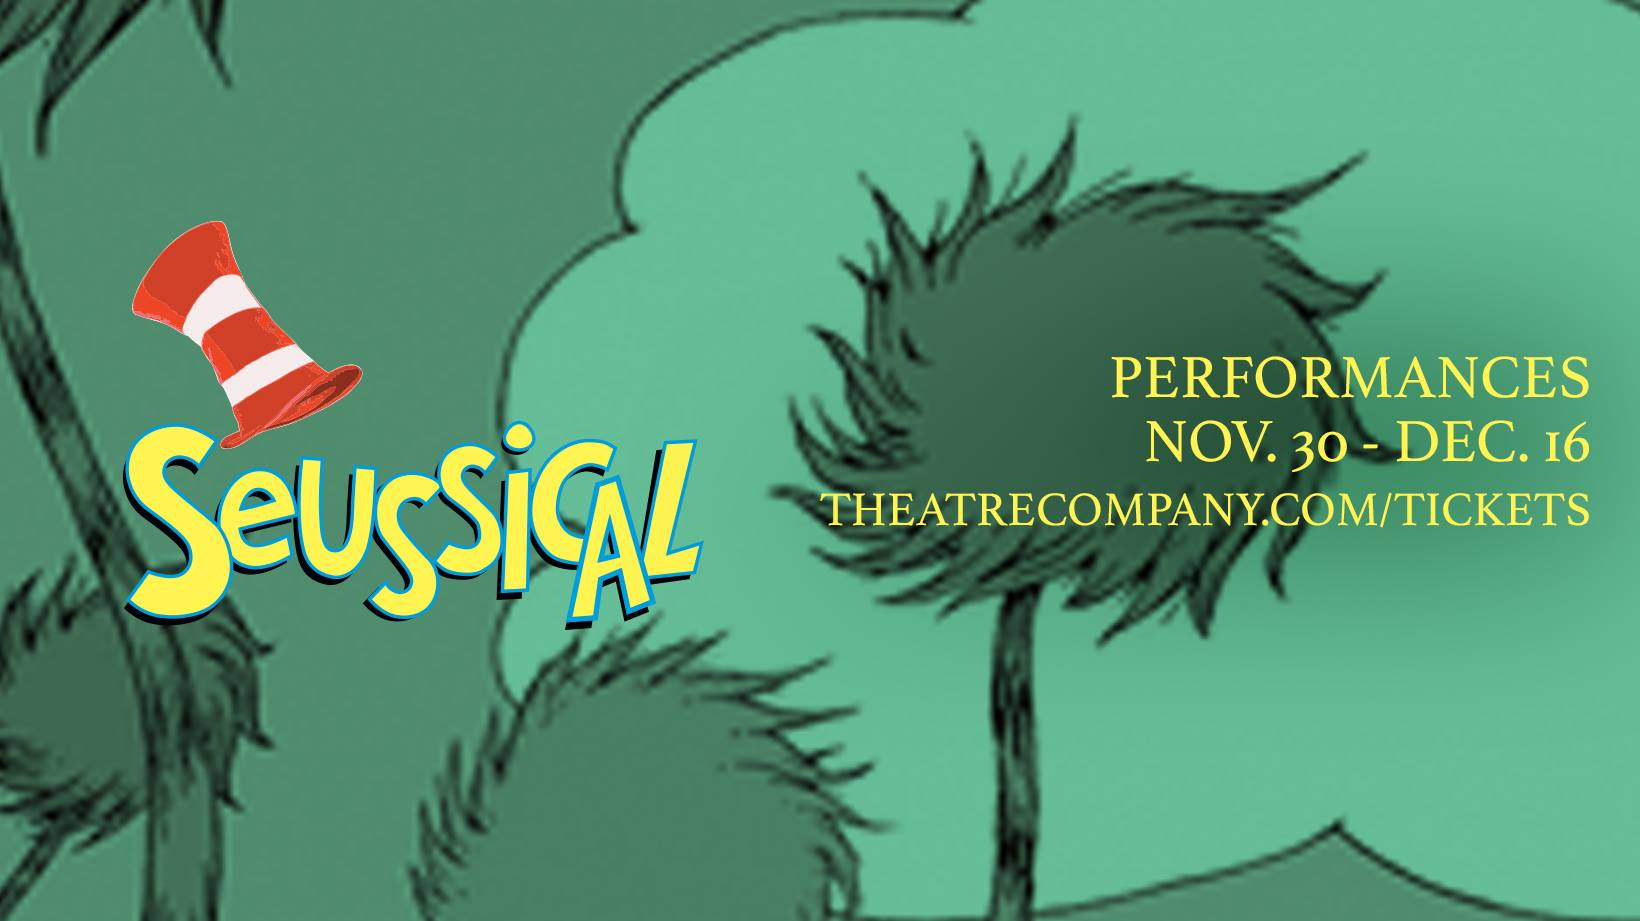 Seussical, the musical by The Theatre Company